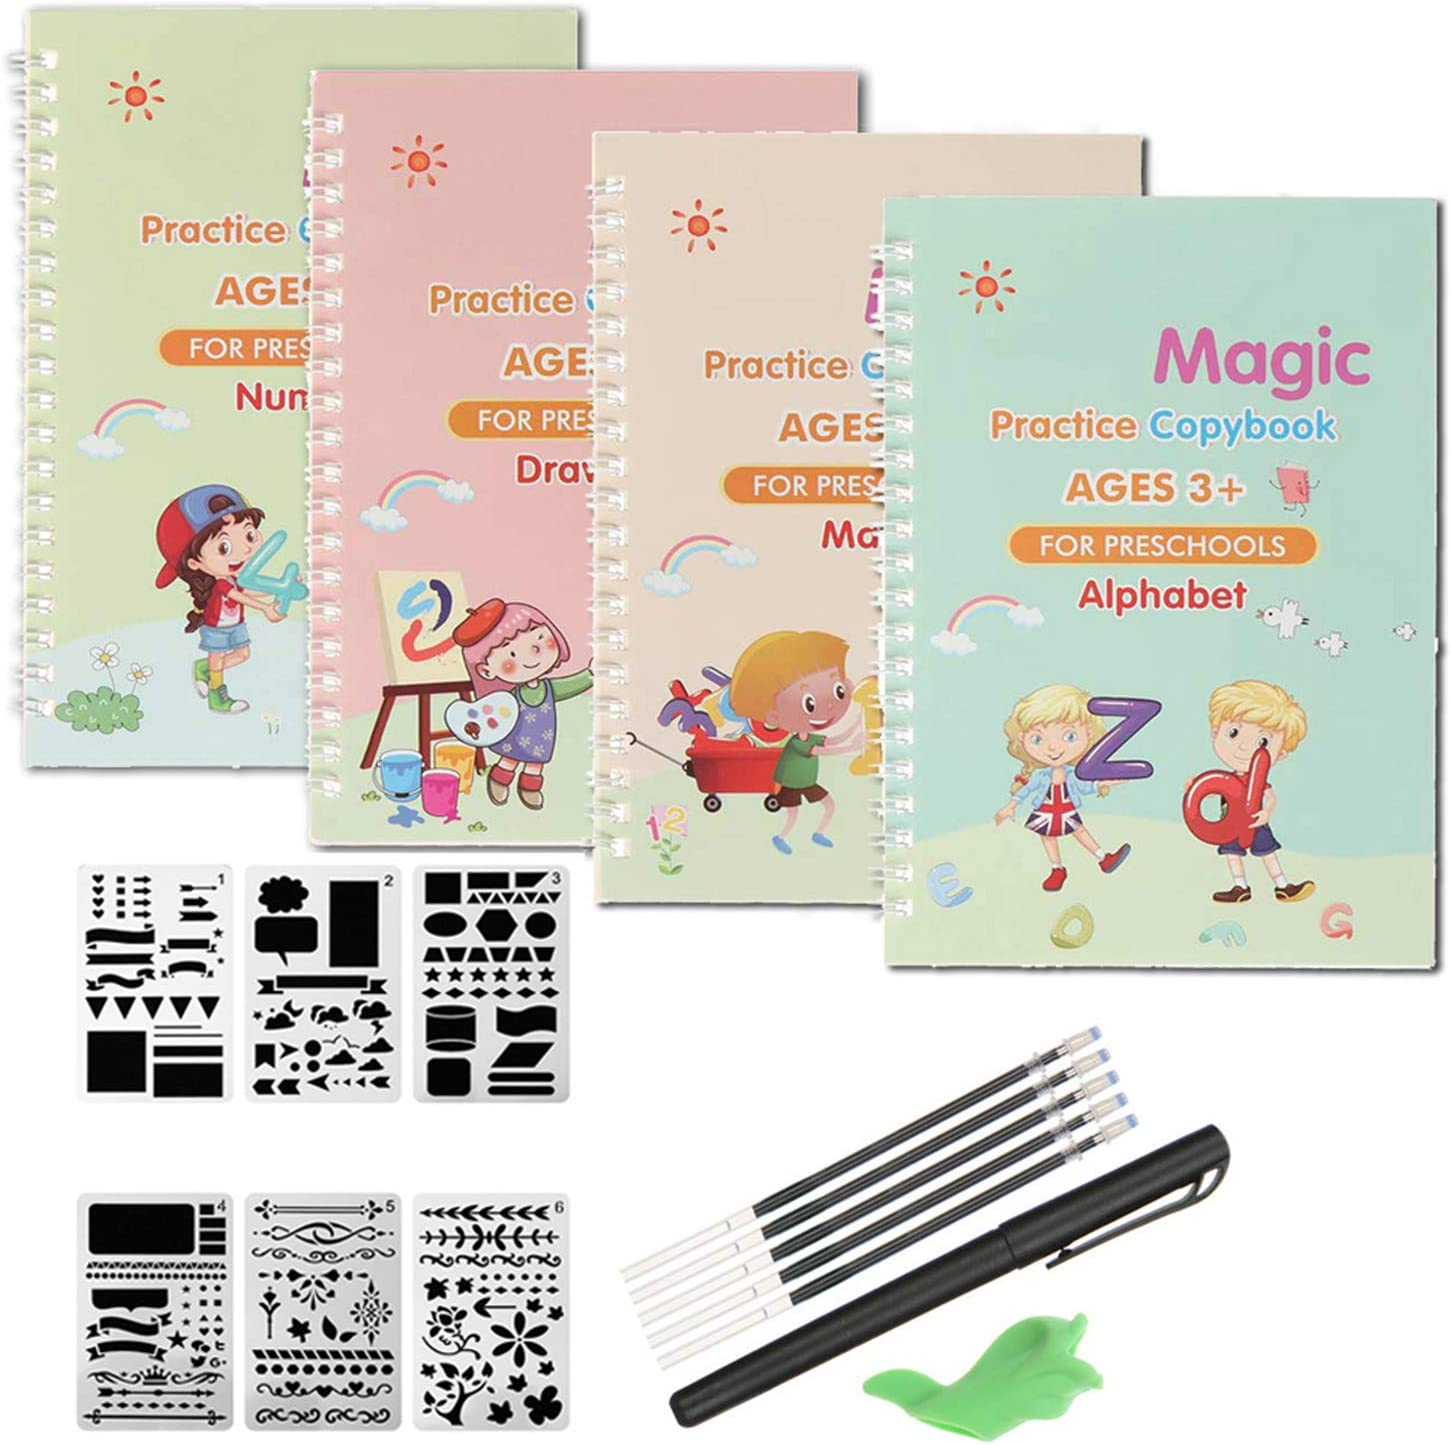 4 Pack Magic Practice Copybook,English Magic Calligraphy That Can Be Reused Handwriting Copybook Tracing Book Set for Kid Calligraphic Letter Writing Drawing Math Writing Paste Board with Pen